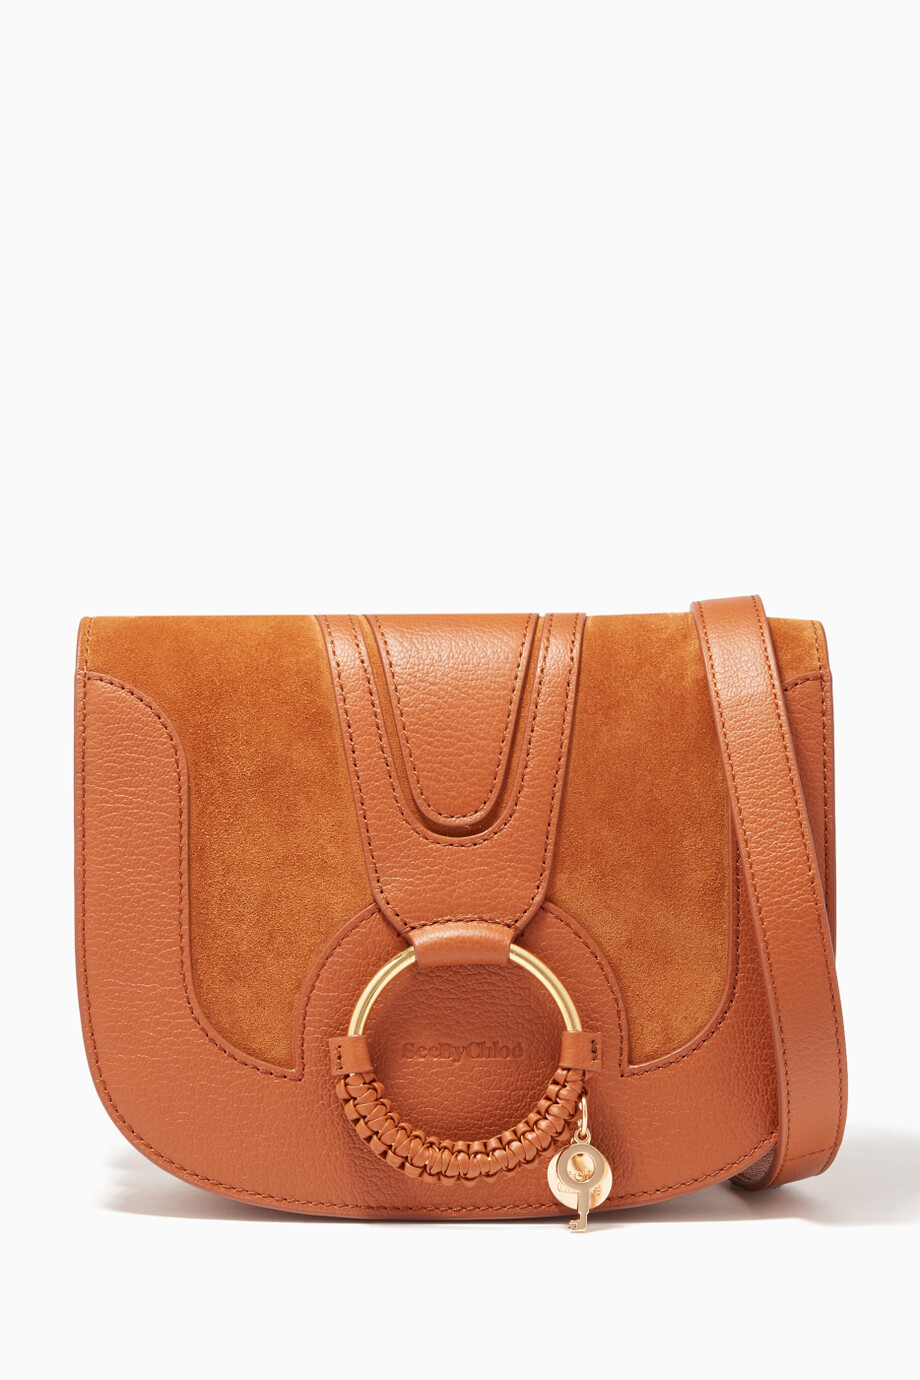 d08ad04b37 Shop See By Chloé Brown Hana Medium Cross-Body Bag for Women ...